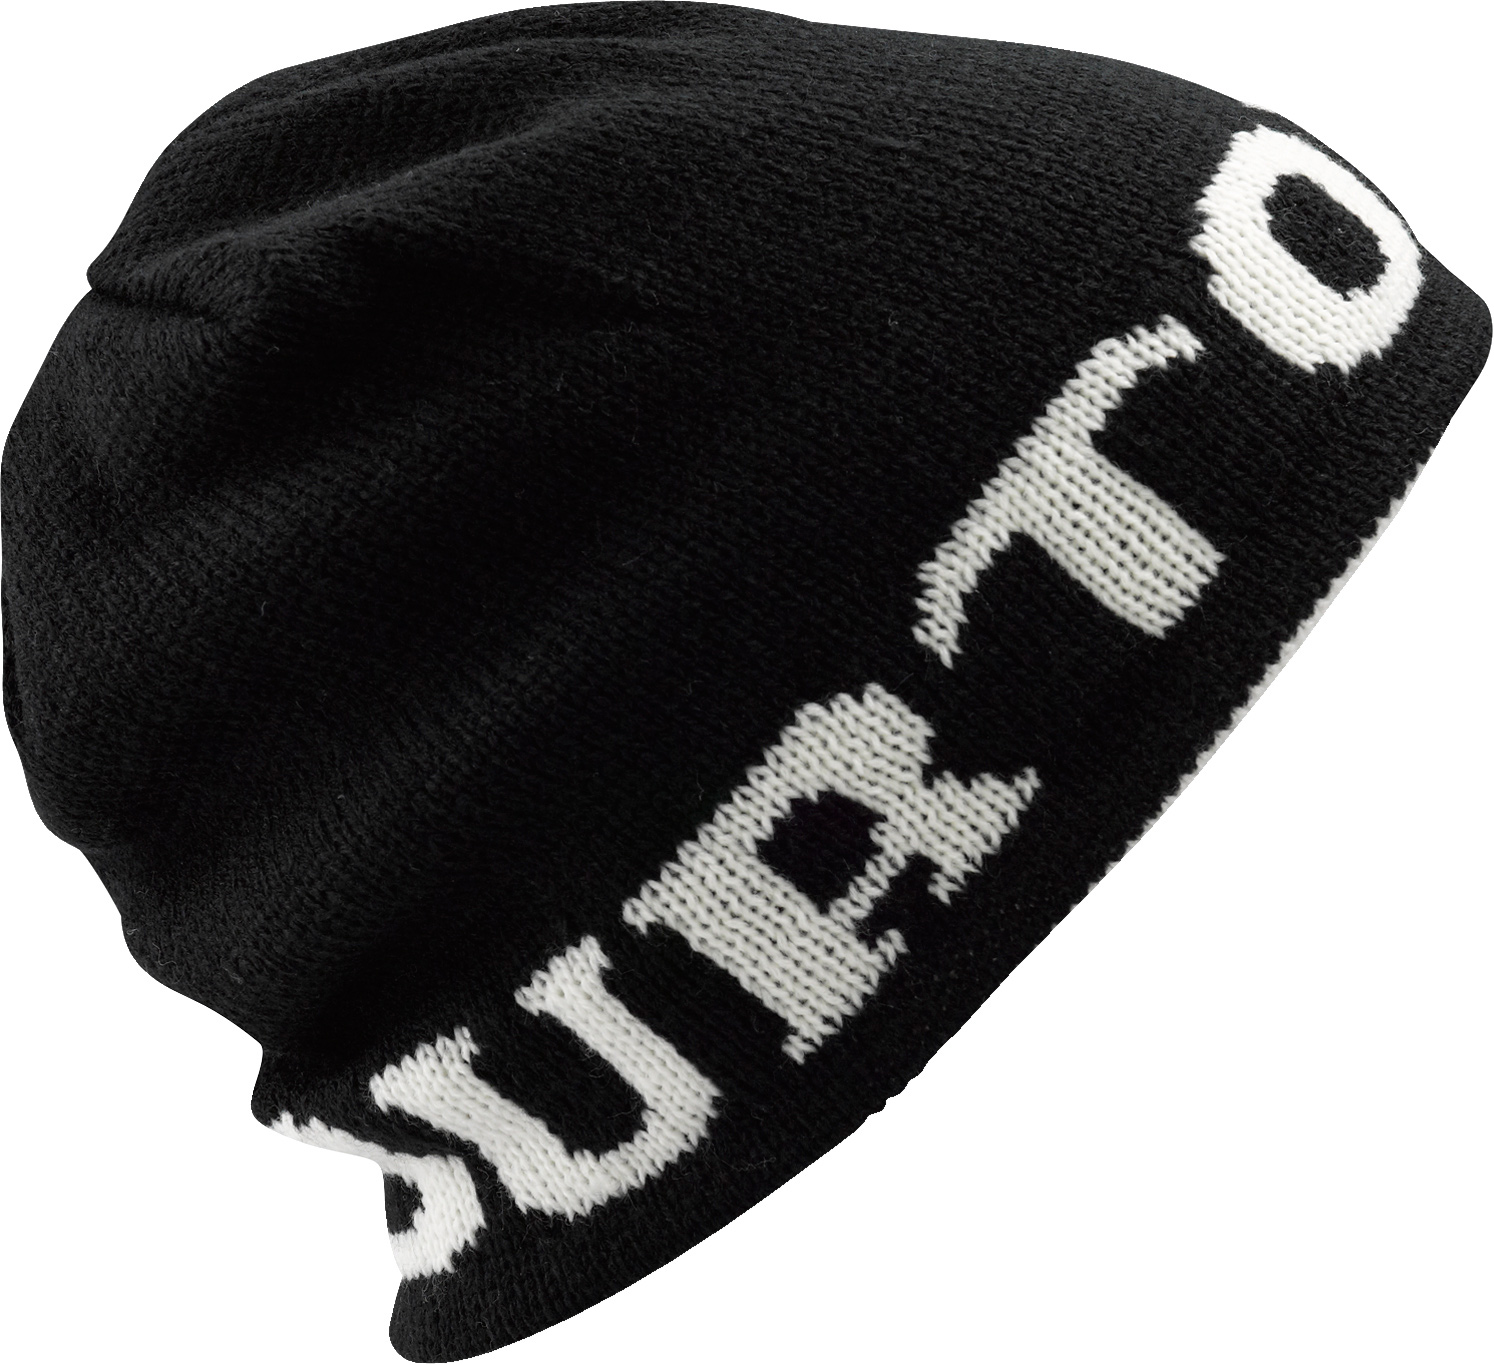 Snowboard Key Features of the Burton Billboard Heritage Beanie: 100% Brushed Acrylic Mountain Logo with Burton Word Mark on Reverse Slouch Fit - $15.95